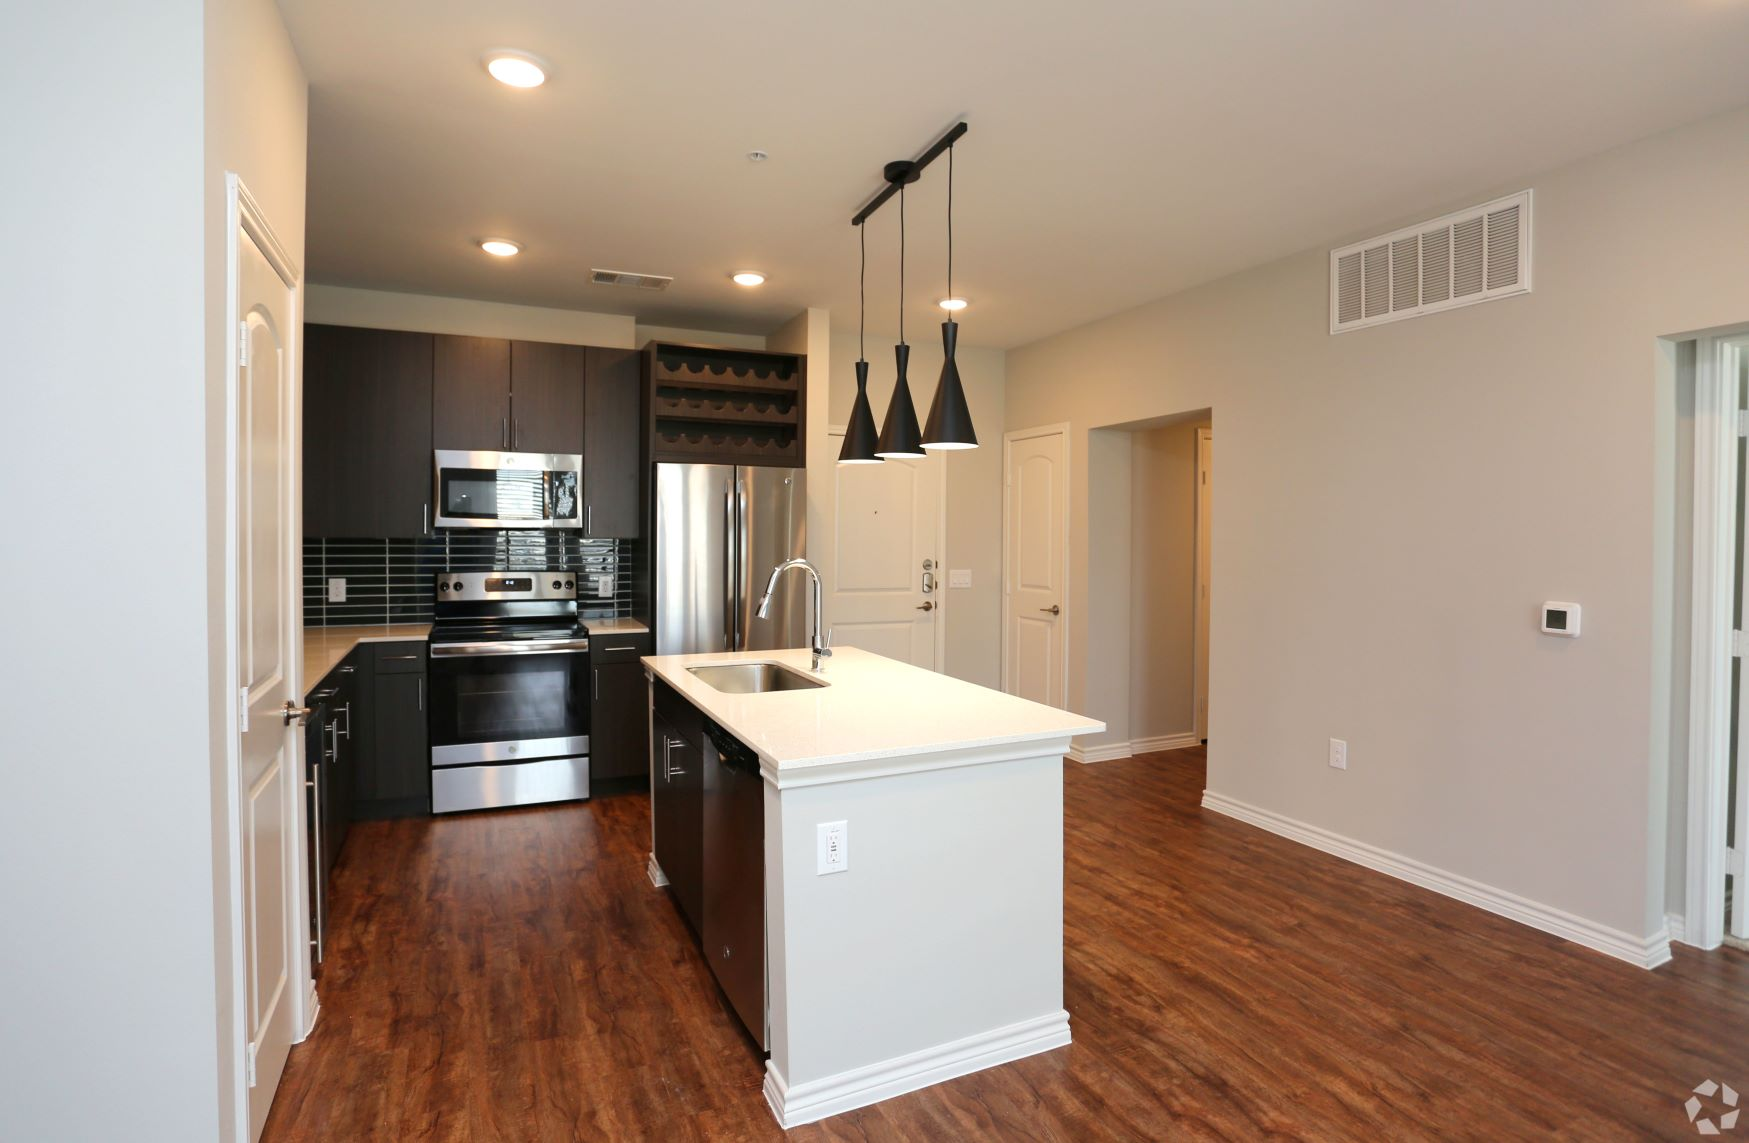 Stainless steel appliances, wine fridge, quartz countertops!